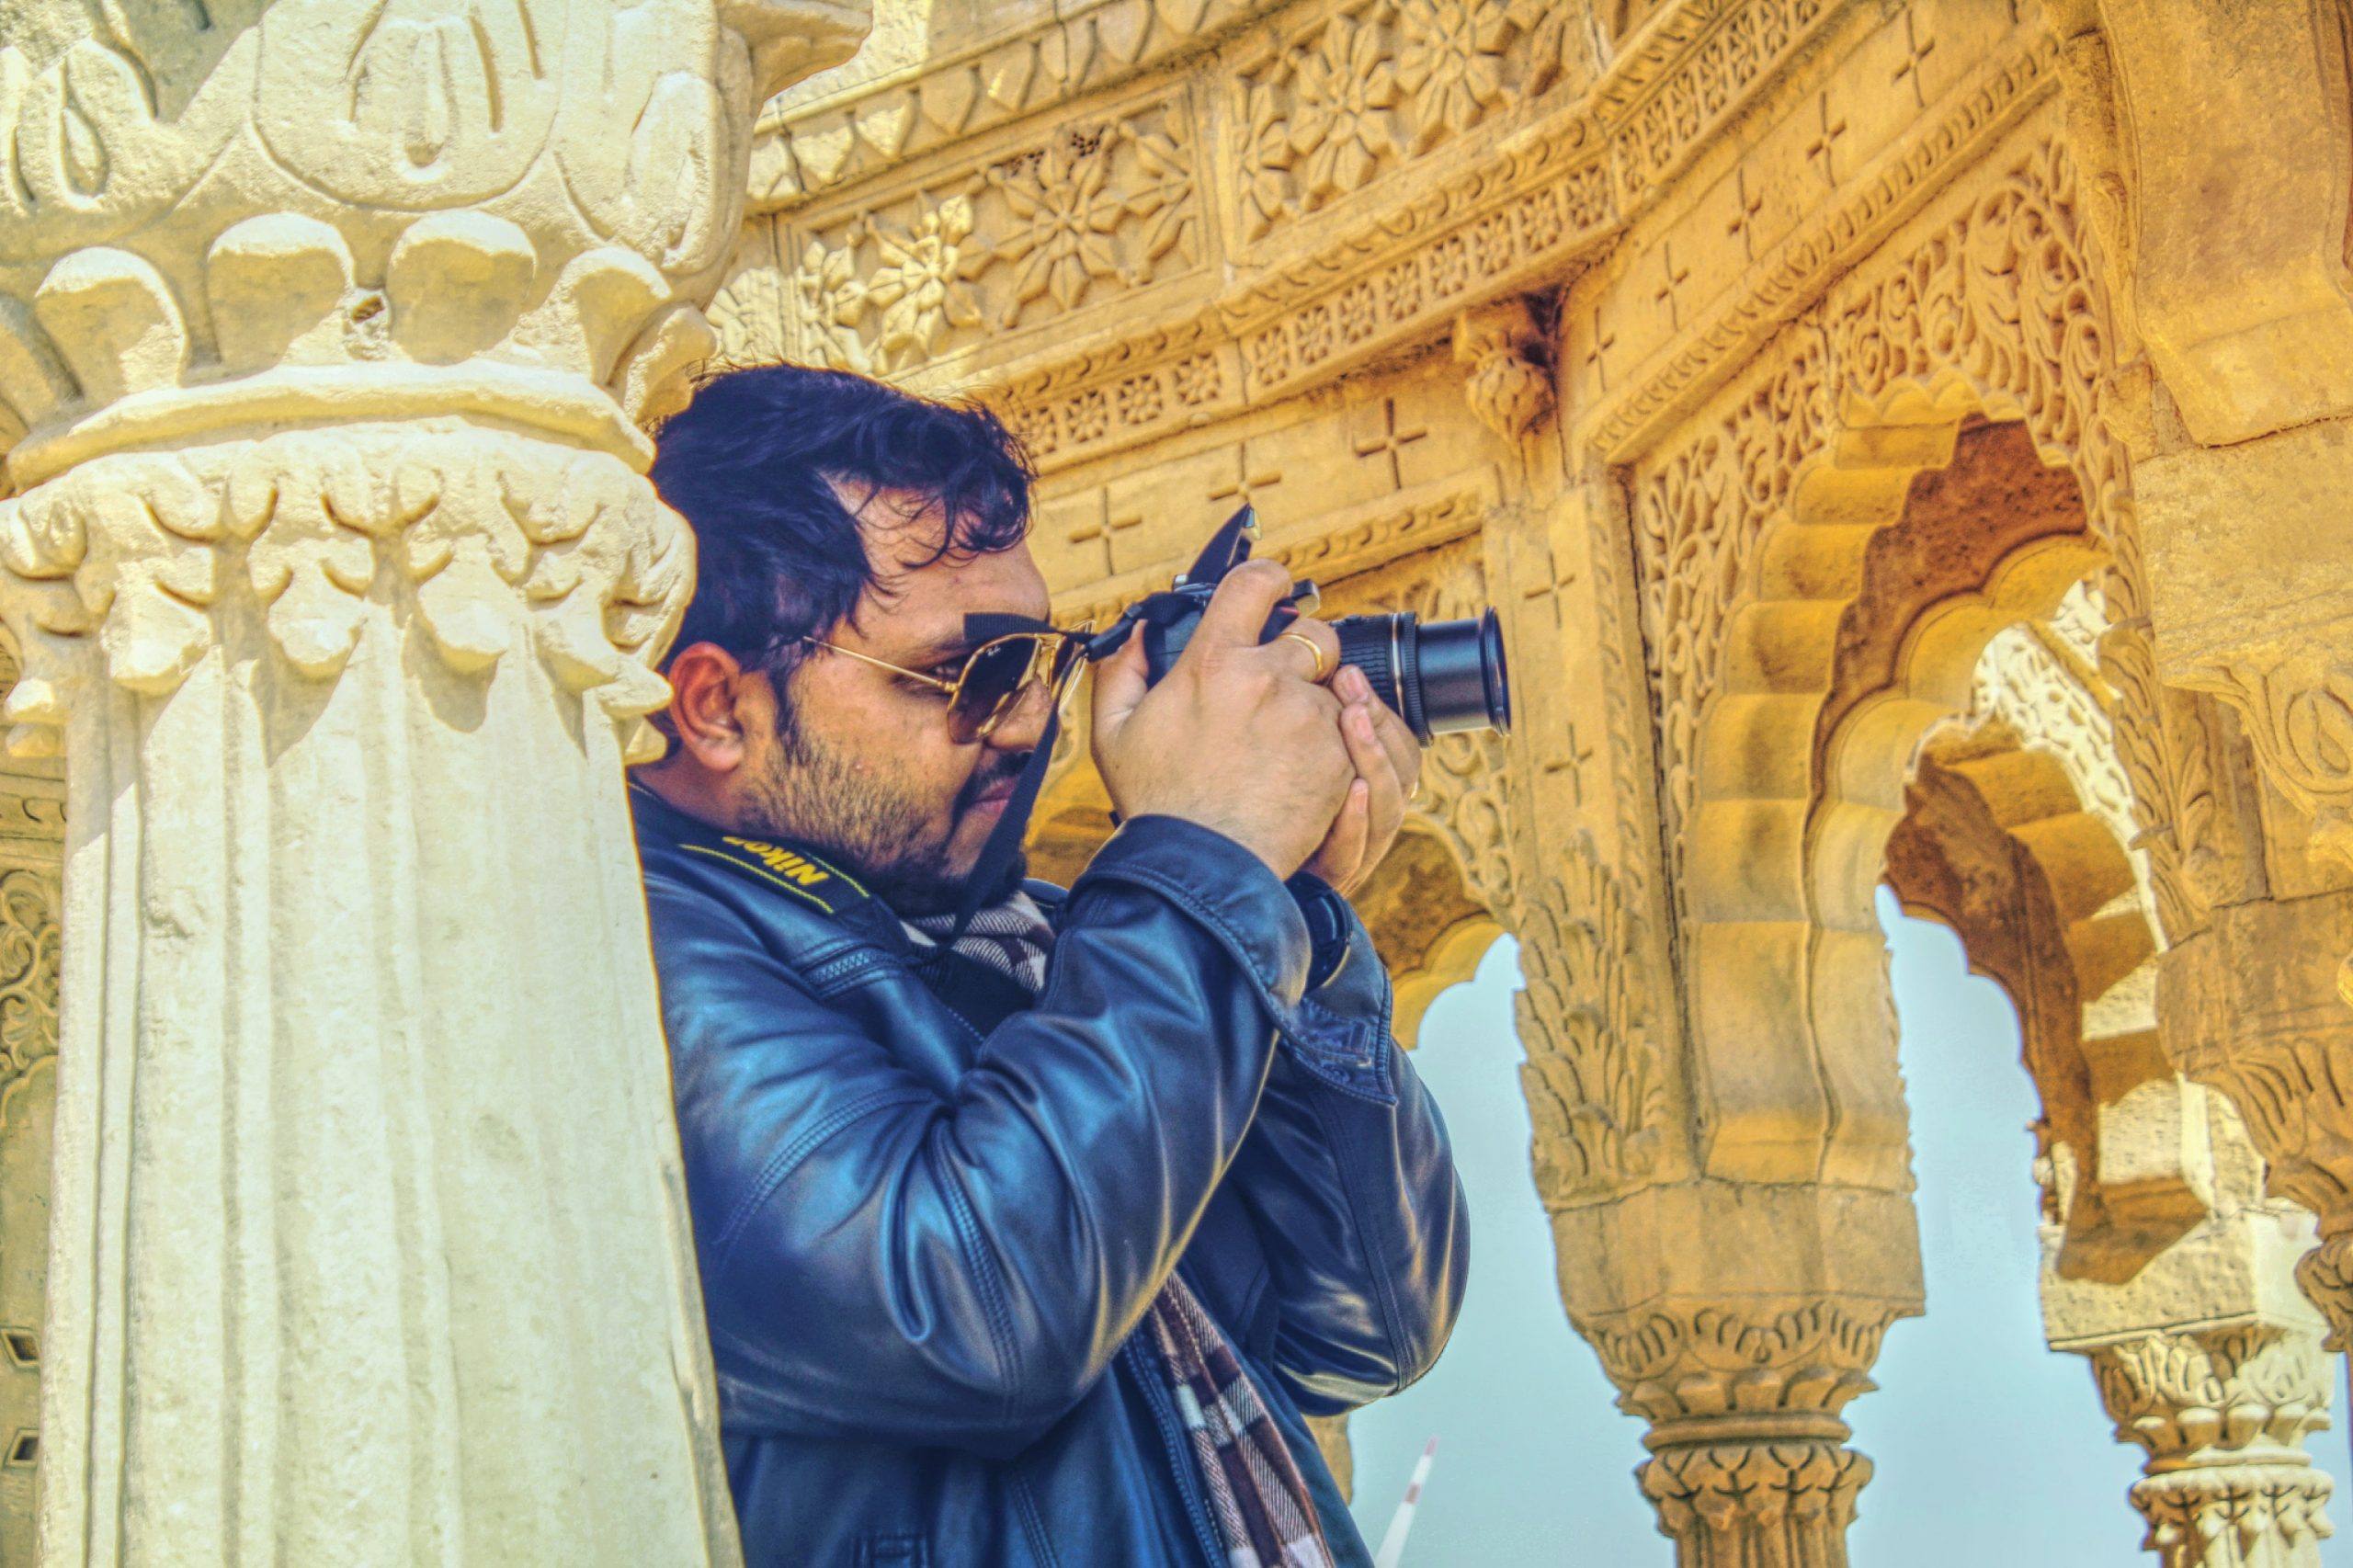 A photographer at Safdarjung tomb